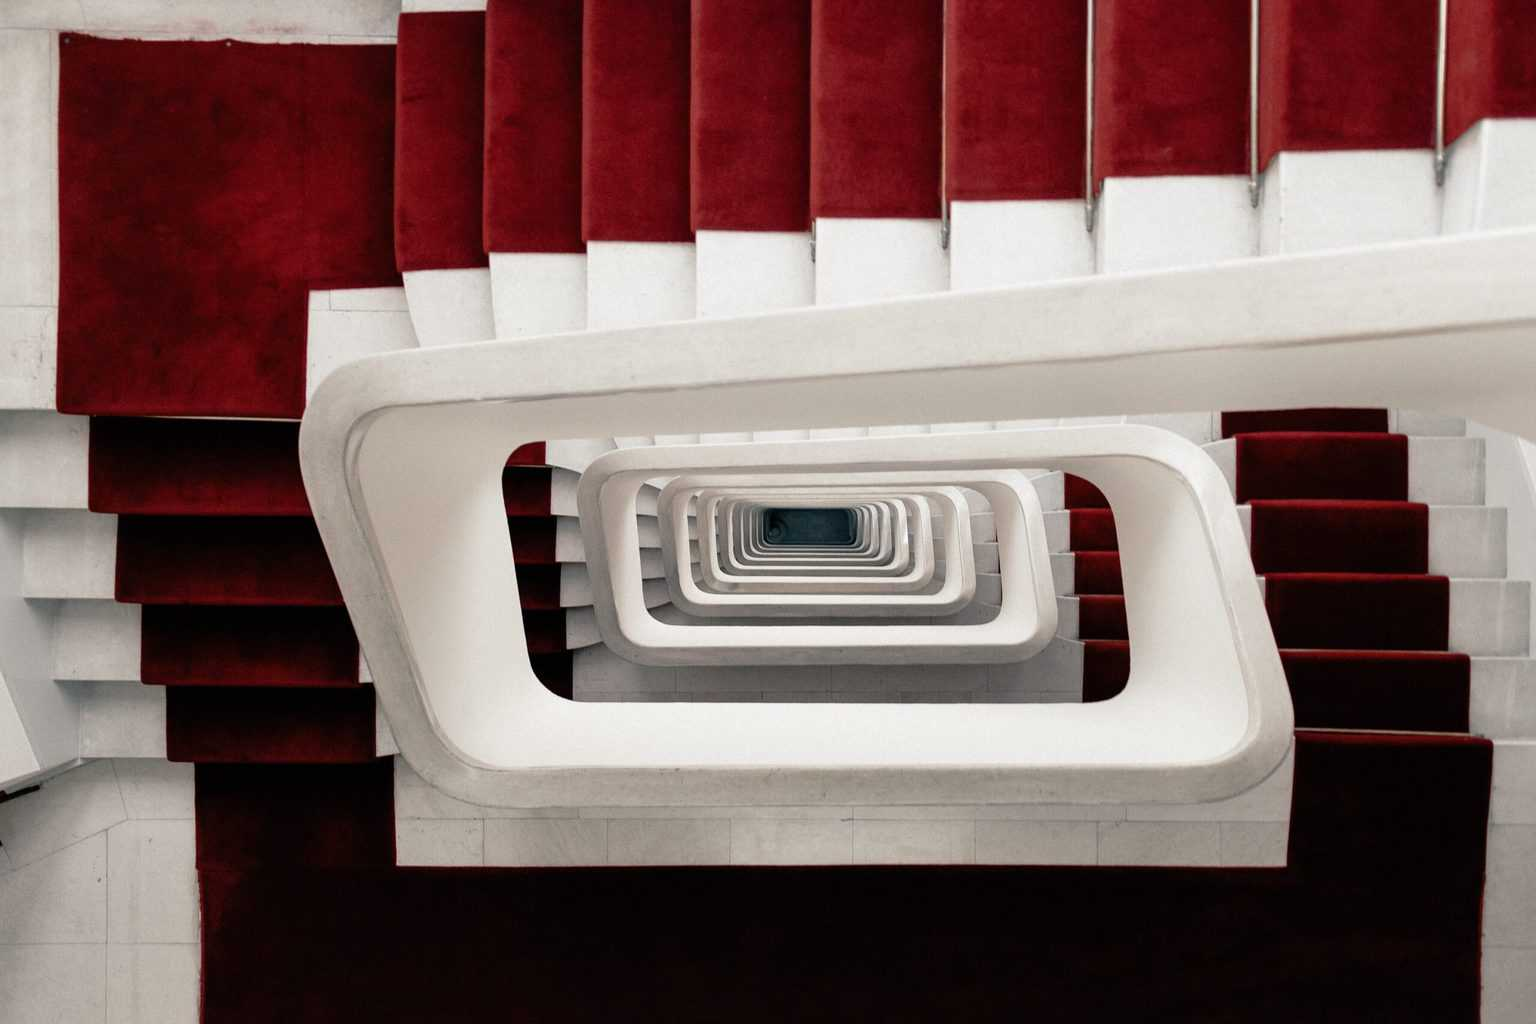 Deep stairs with a red carpet